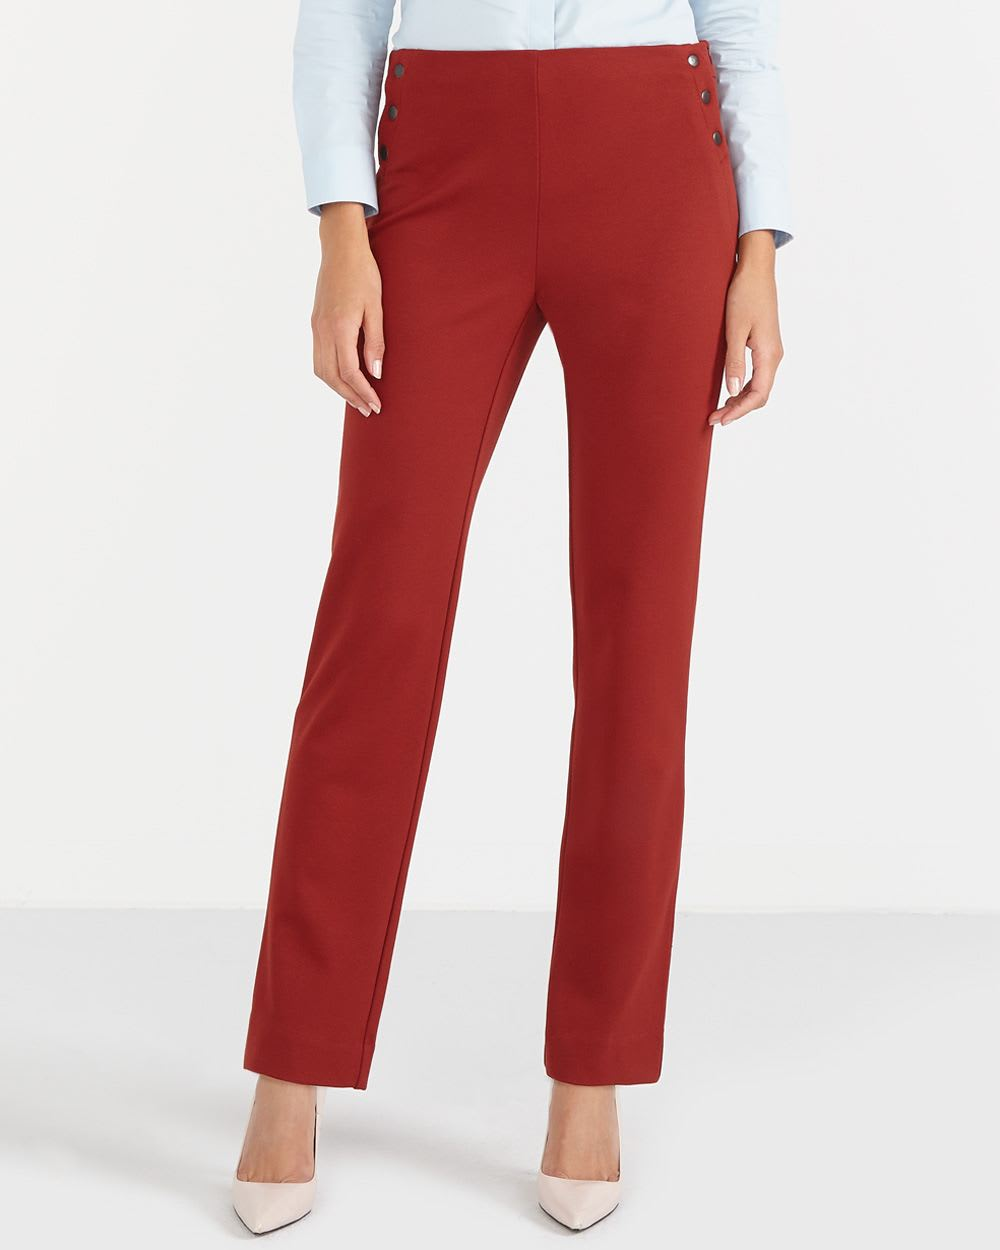 Pants Leggings Skinny Slim Trouser Wide Leg Marisa Fit Julie Fit Corduroy & More Work Perfect Pants Jeans Leggings Skinny Straight High Rise Skinny Bootcut Boyfriend Modern Fit Curvy Fit Leggings Jumpsuits & Rompers Jackets & Blazers.